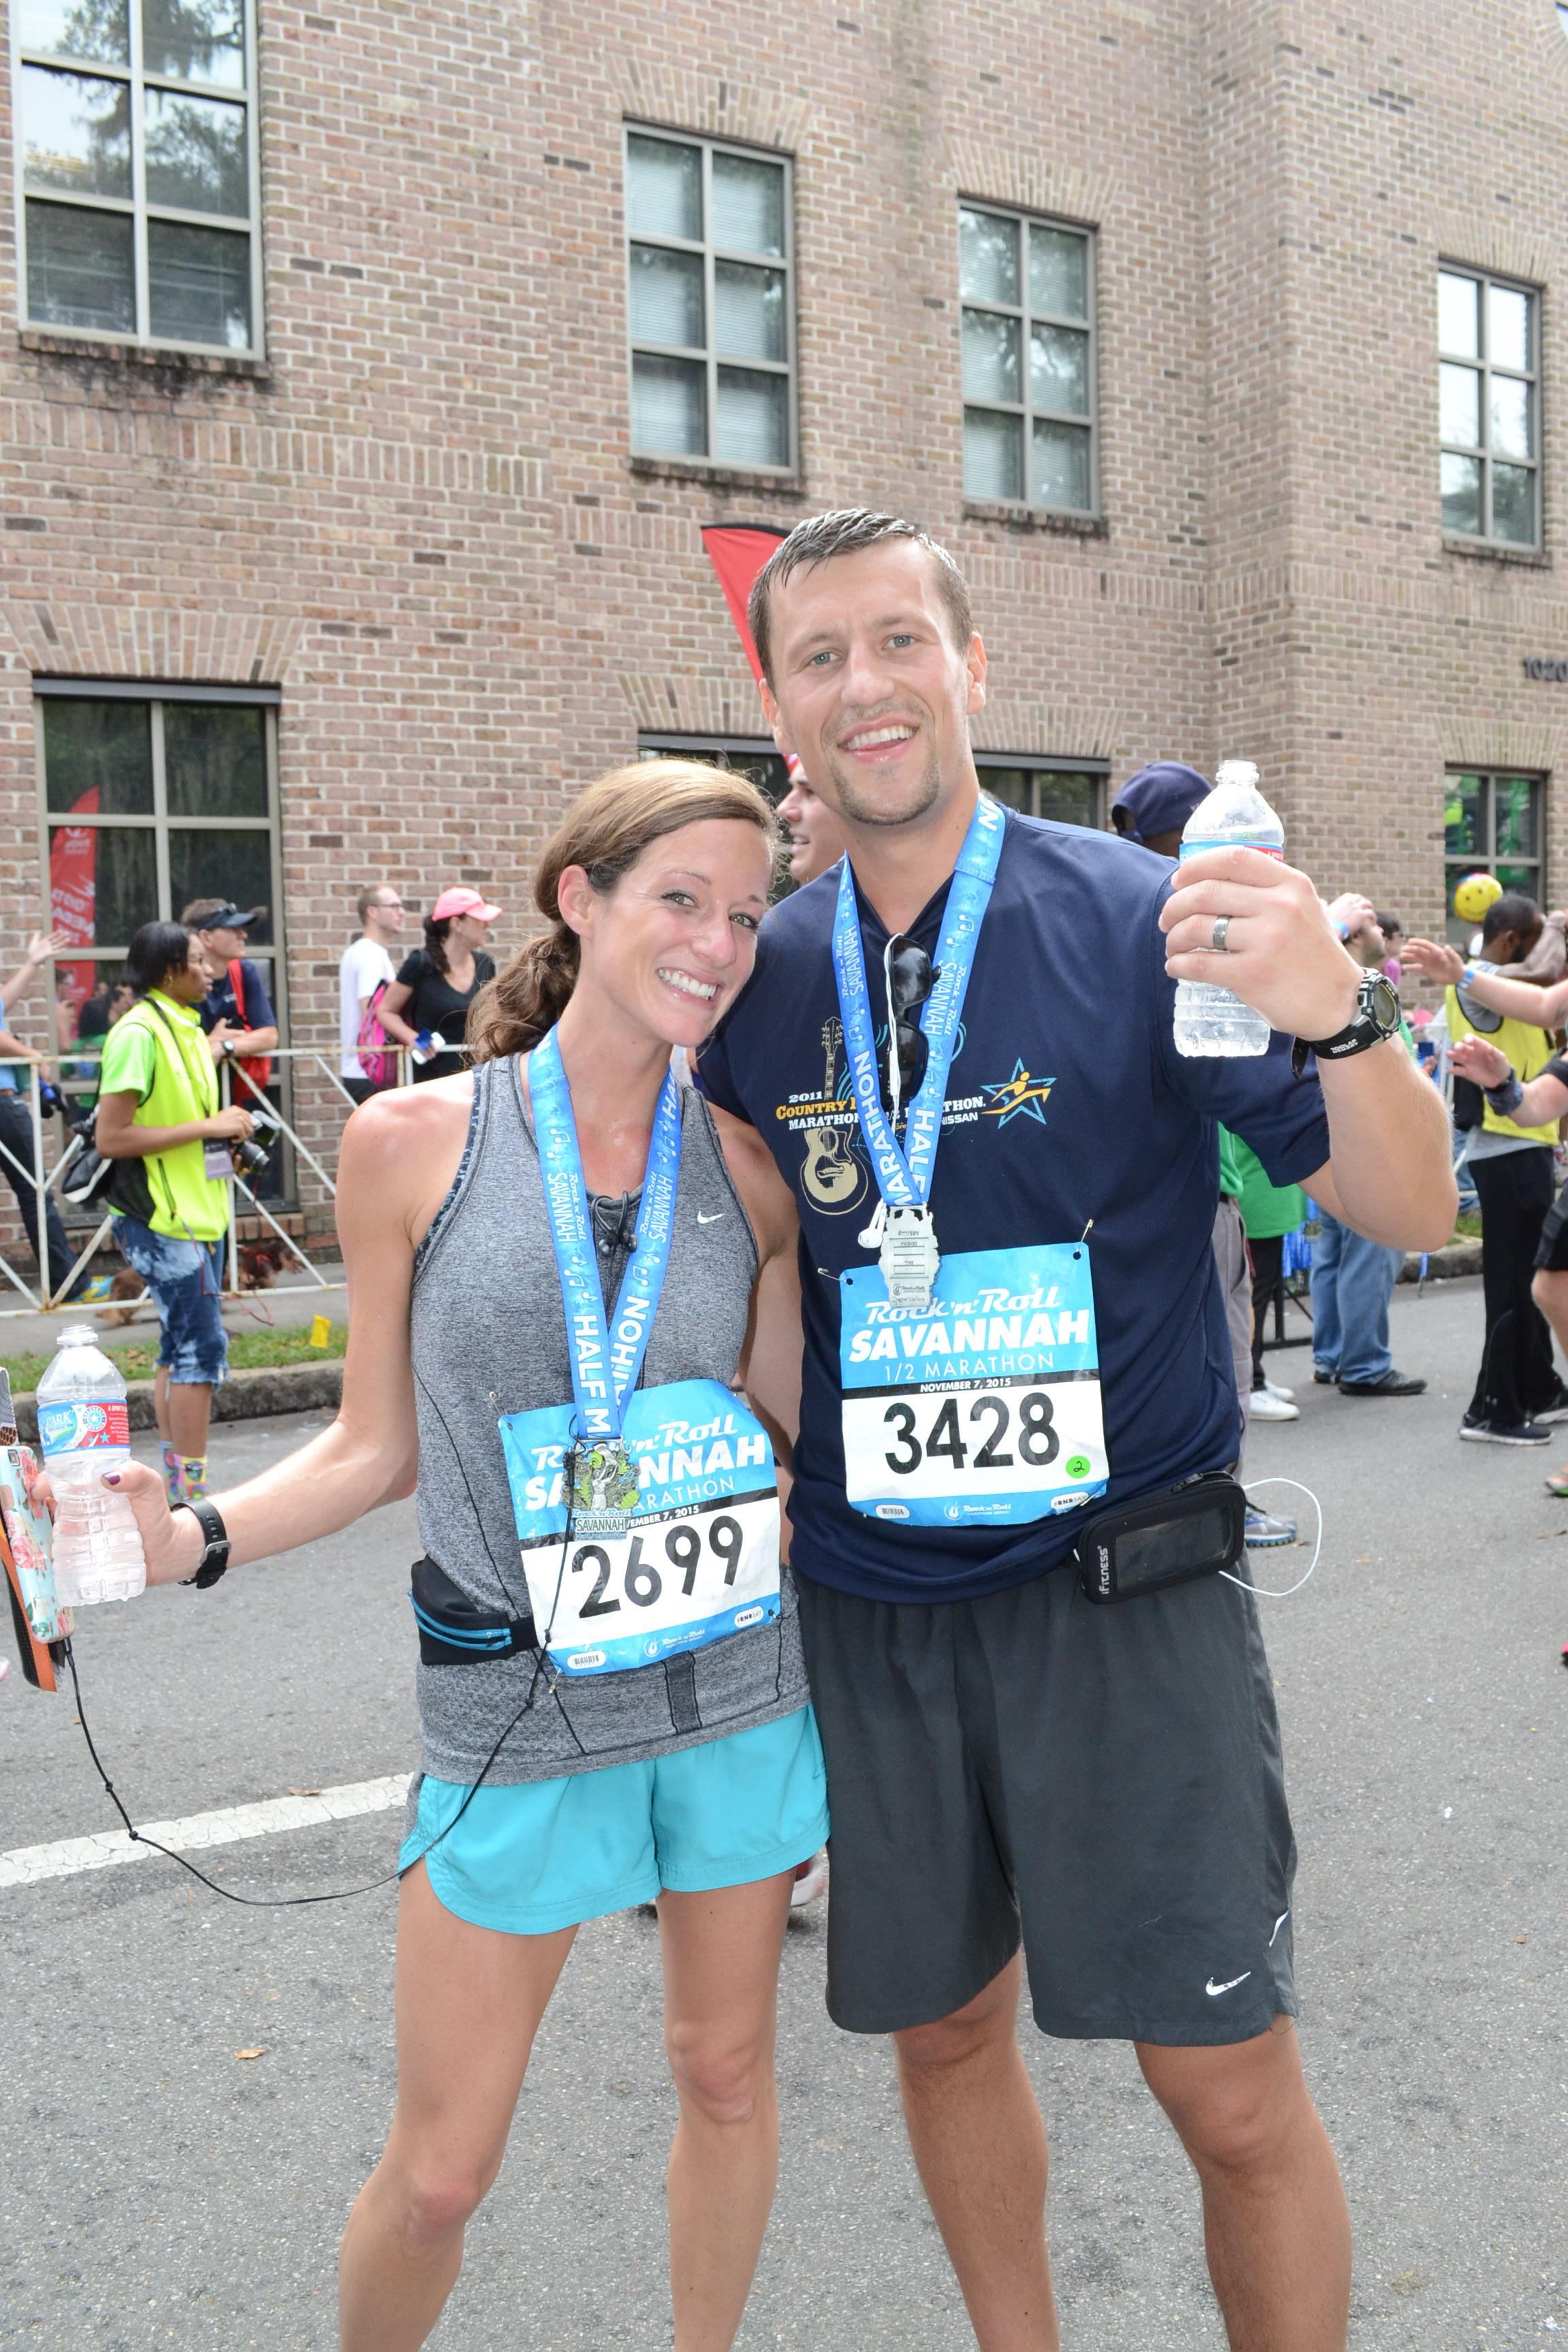 My favorite running buddy (my hubby) at our last half marathon in Savannah. This is the first race that we won't be running together but he is going to be the best little cheerleader on the sideline!